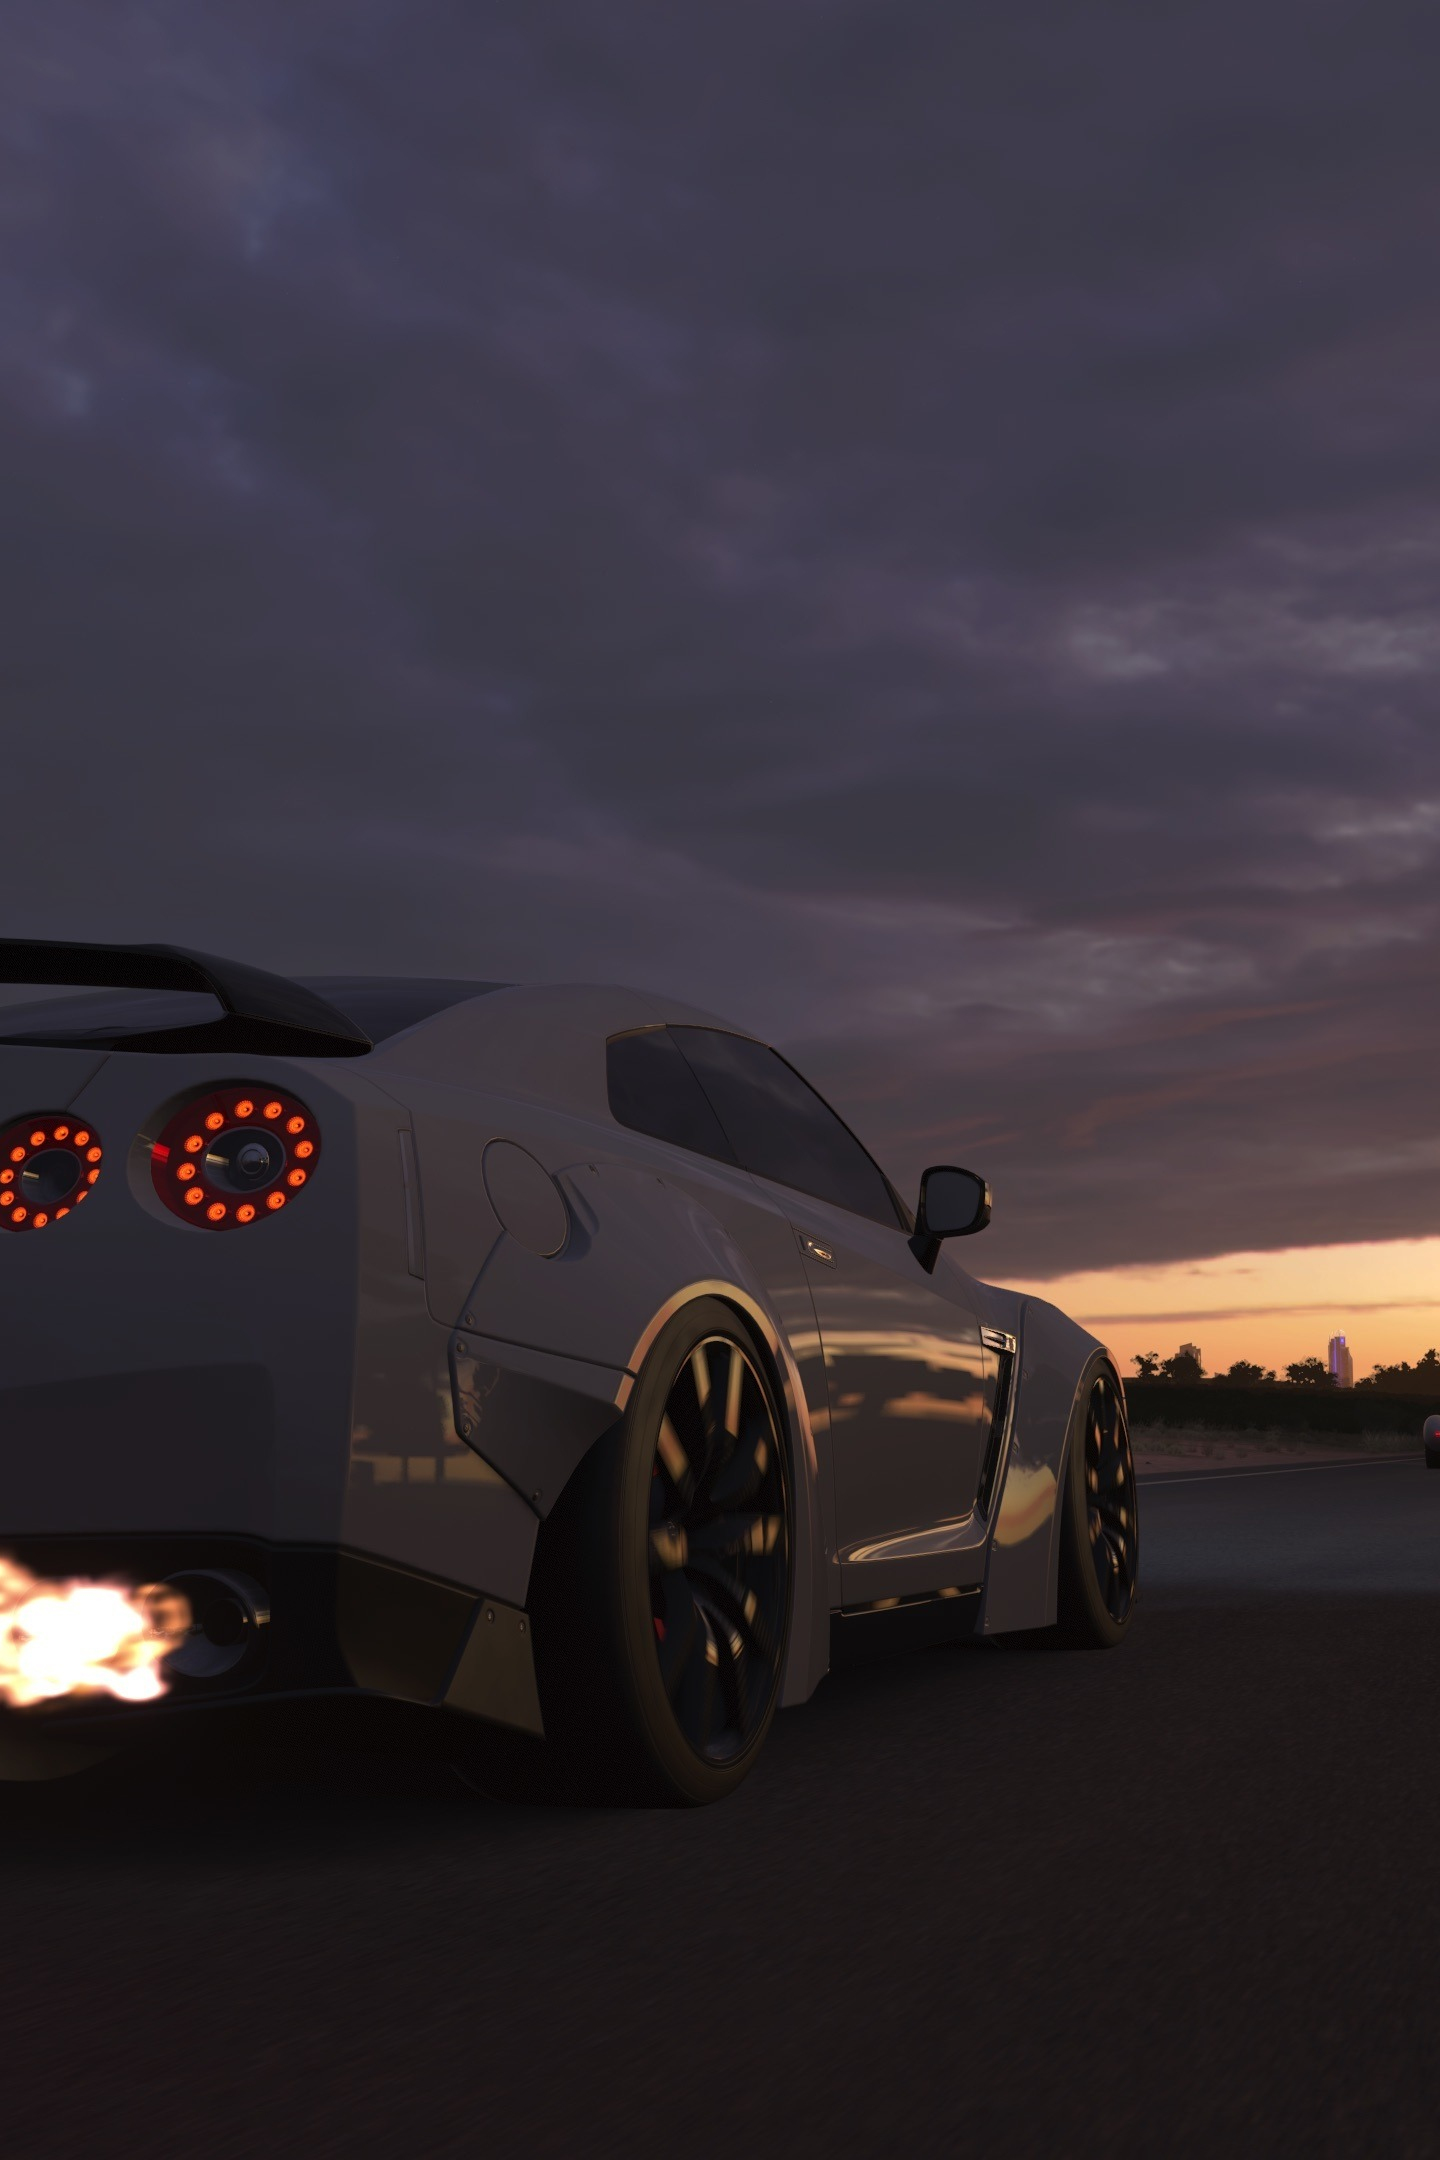 Download 1440x2630 Wallpaper Forza Motorsport 7 Video Game Nissan Car Samsung Galaxy Note 8 1440x2630 Hd Image Background 2358